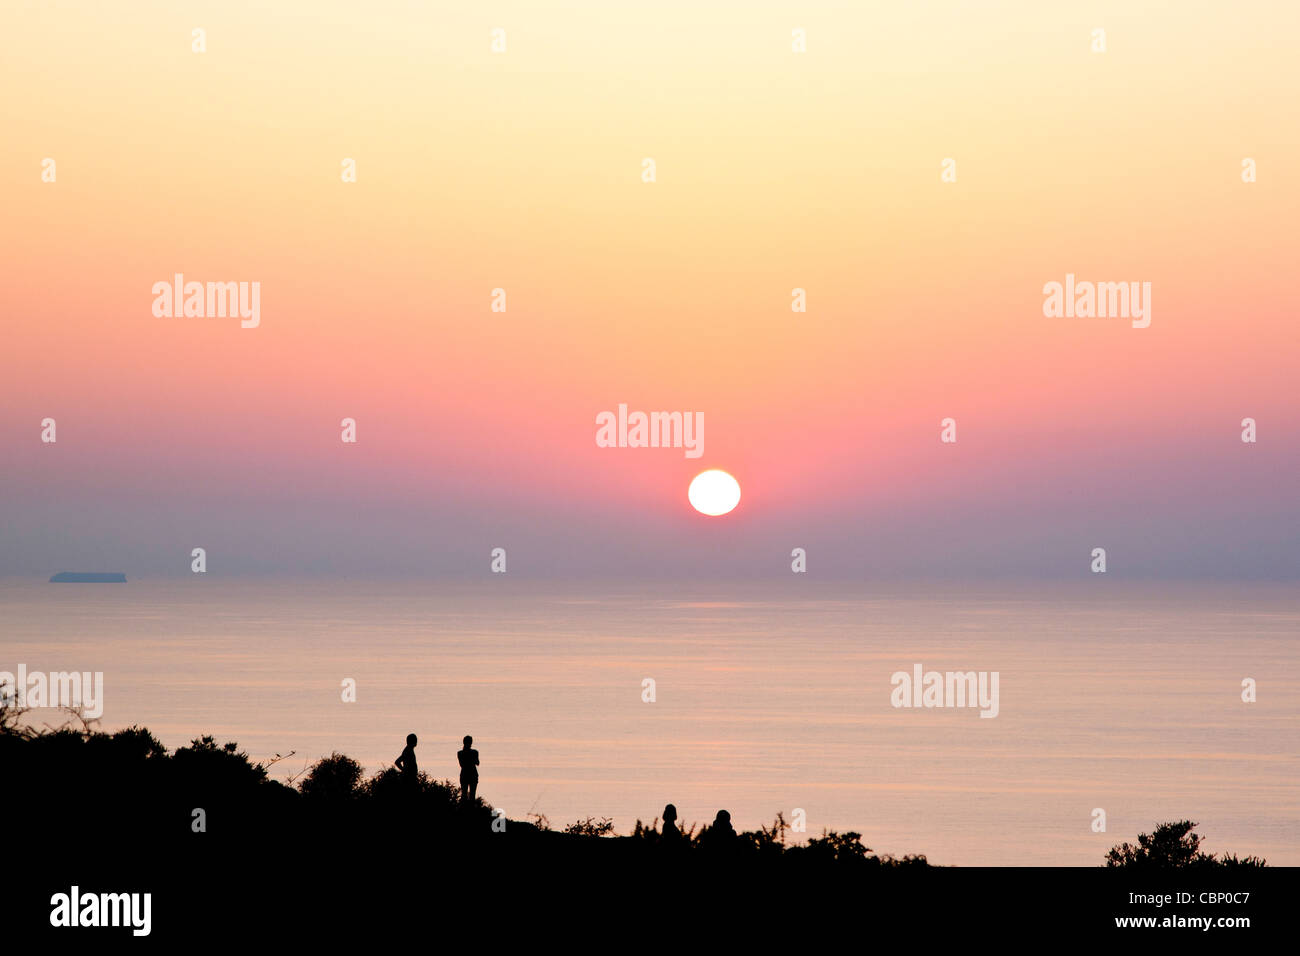 any People Silouettes on Sunset in Lampedusa - Stock Image